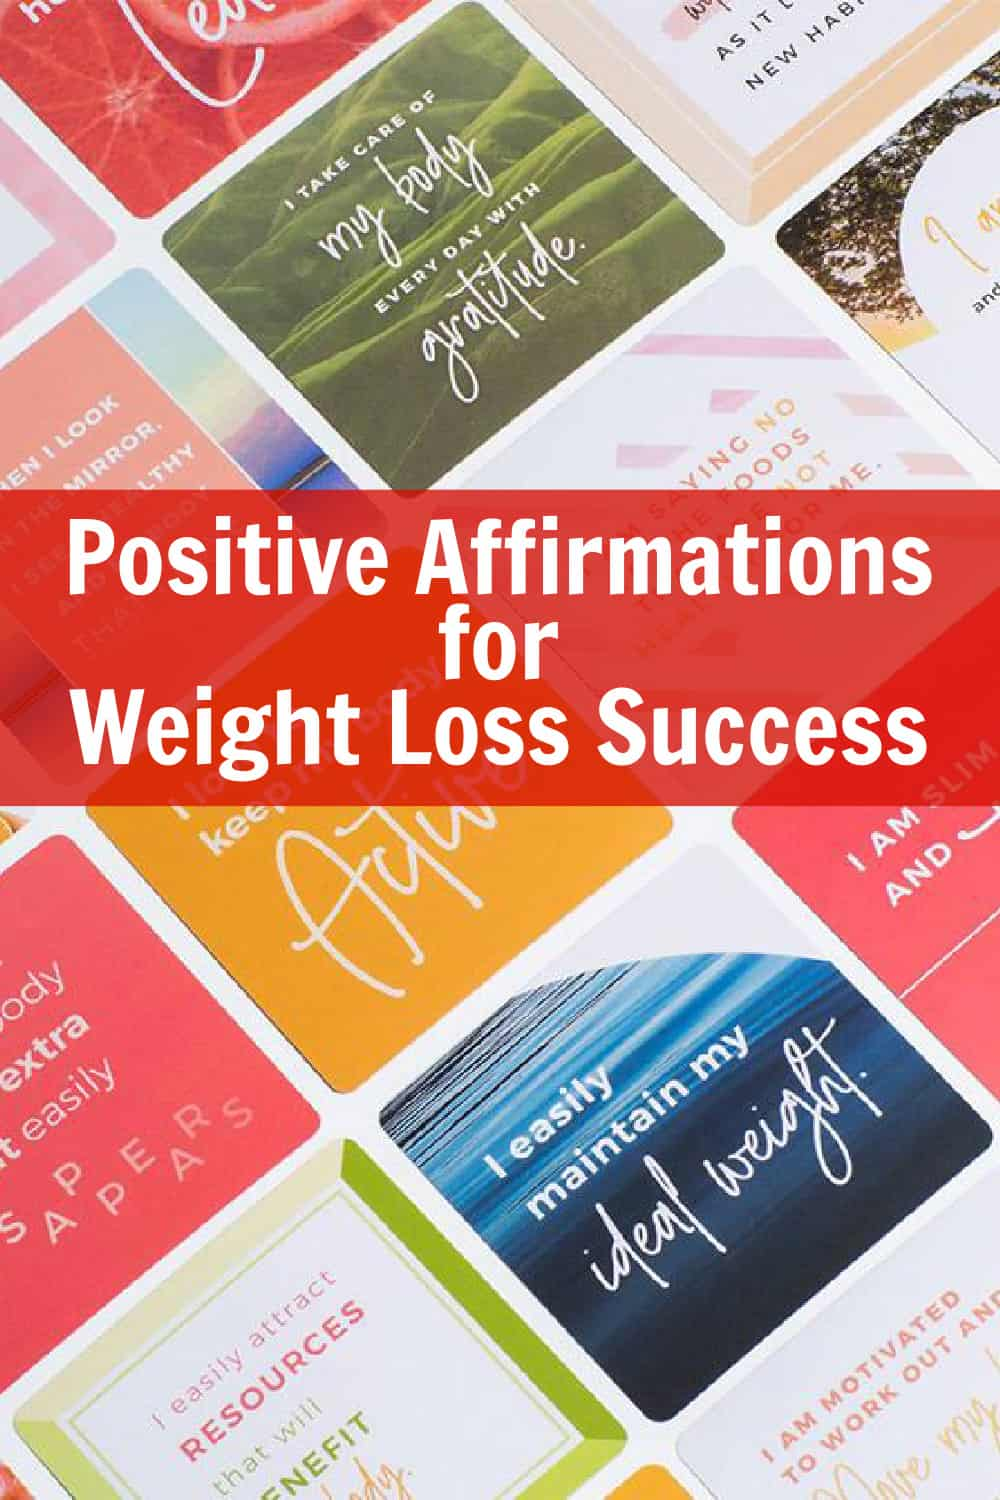 Assortment of positive affirmations for weight loss success